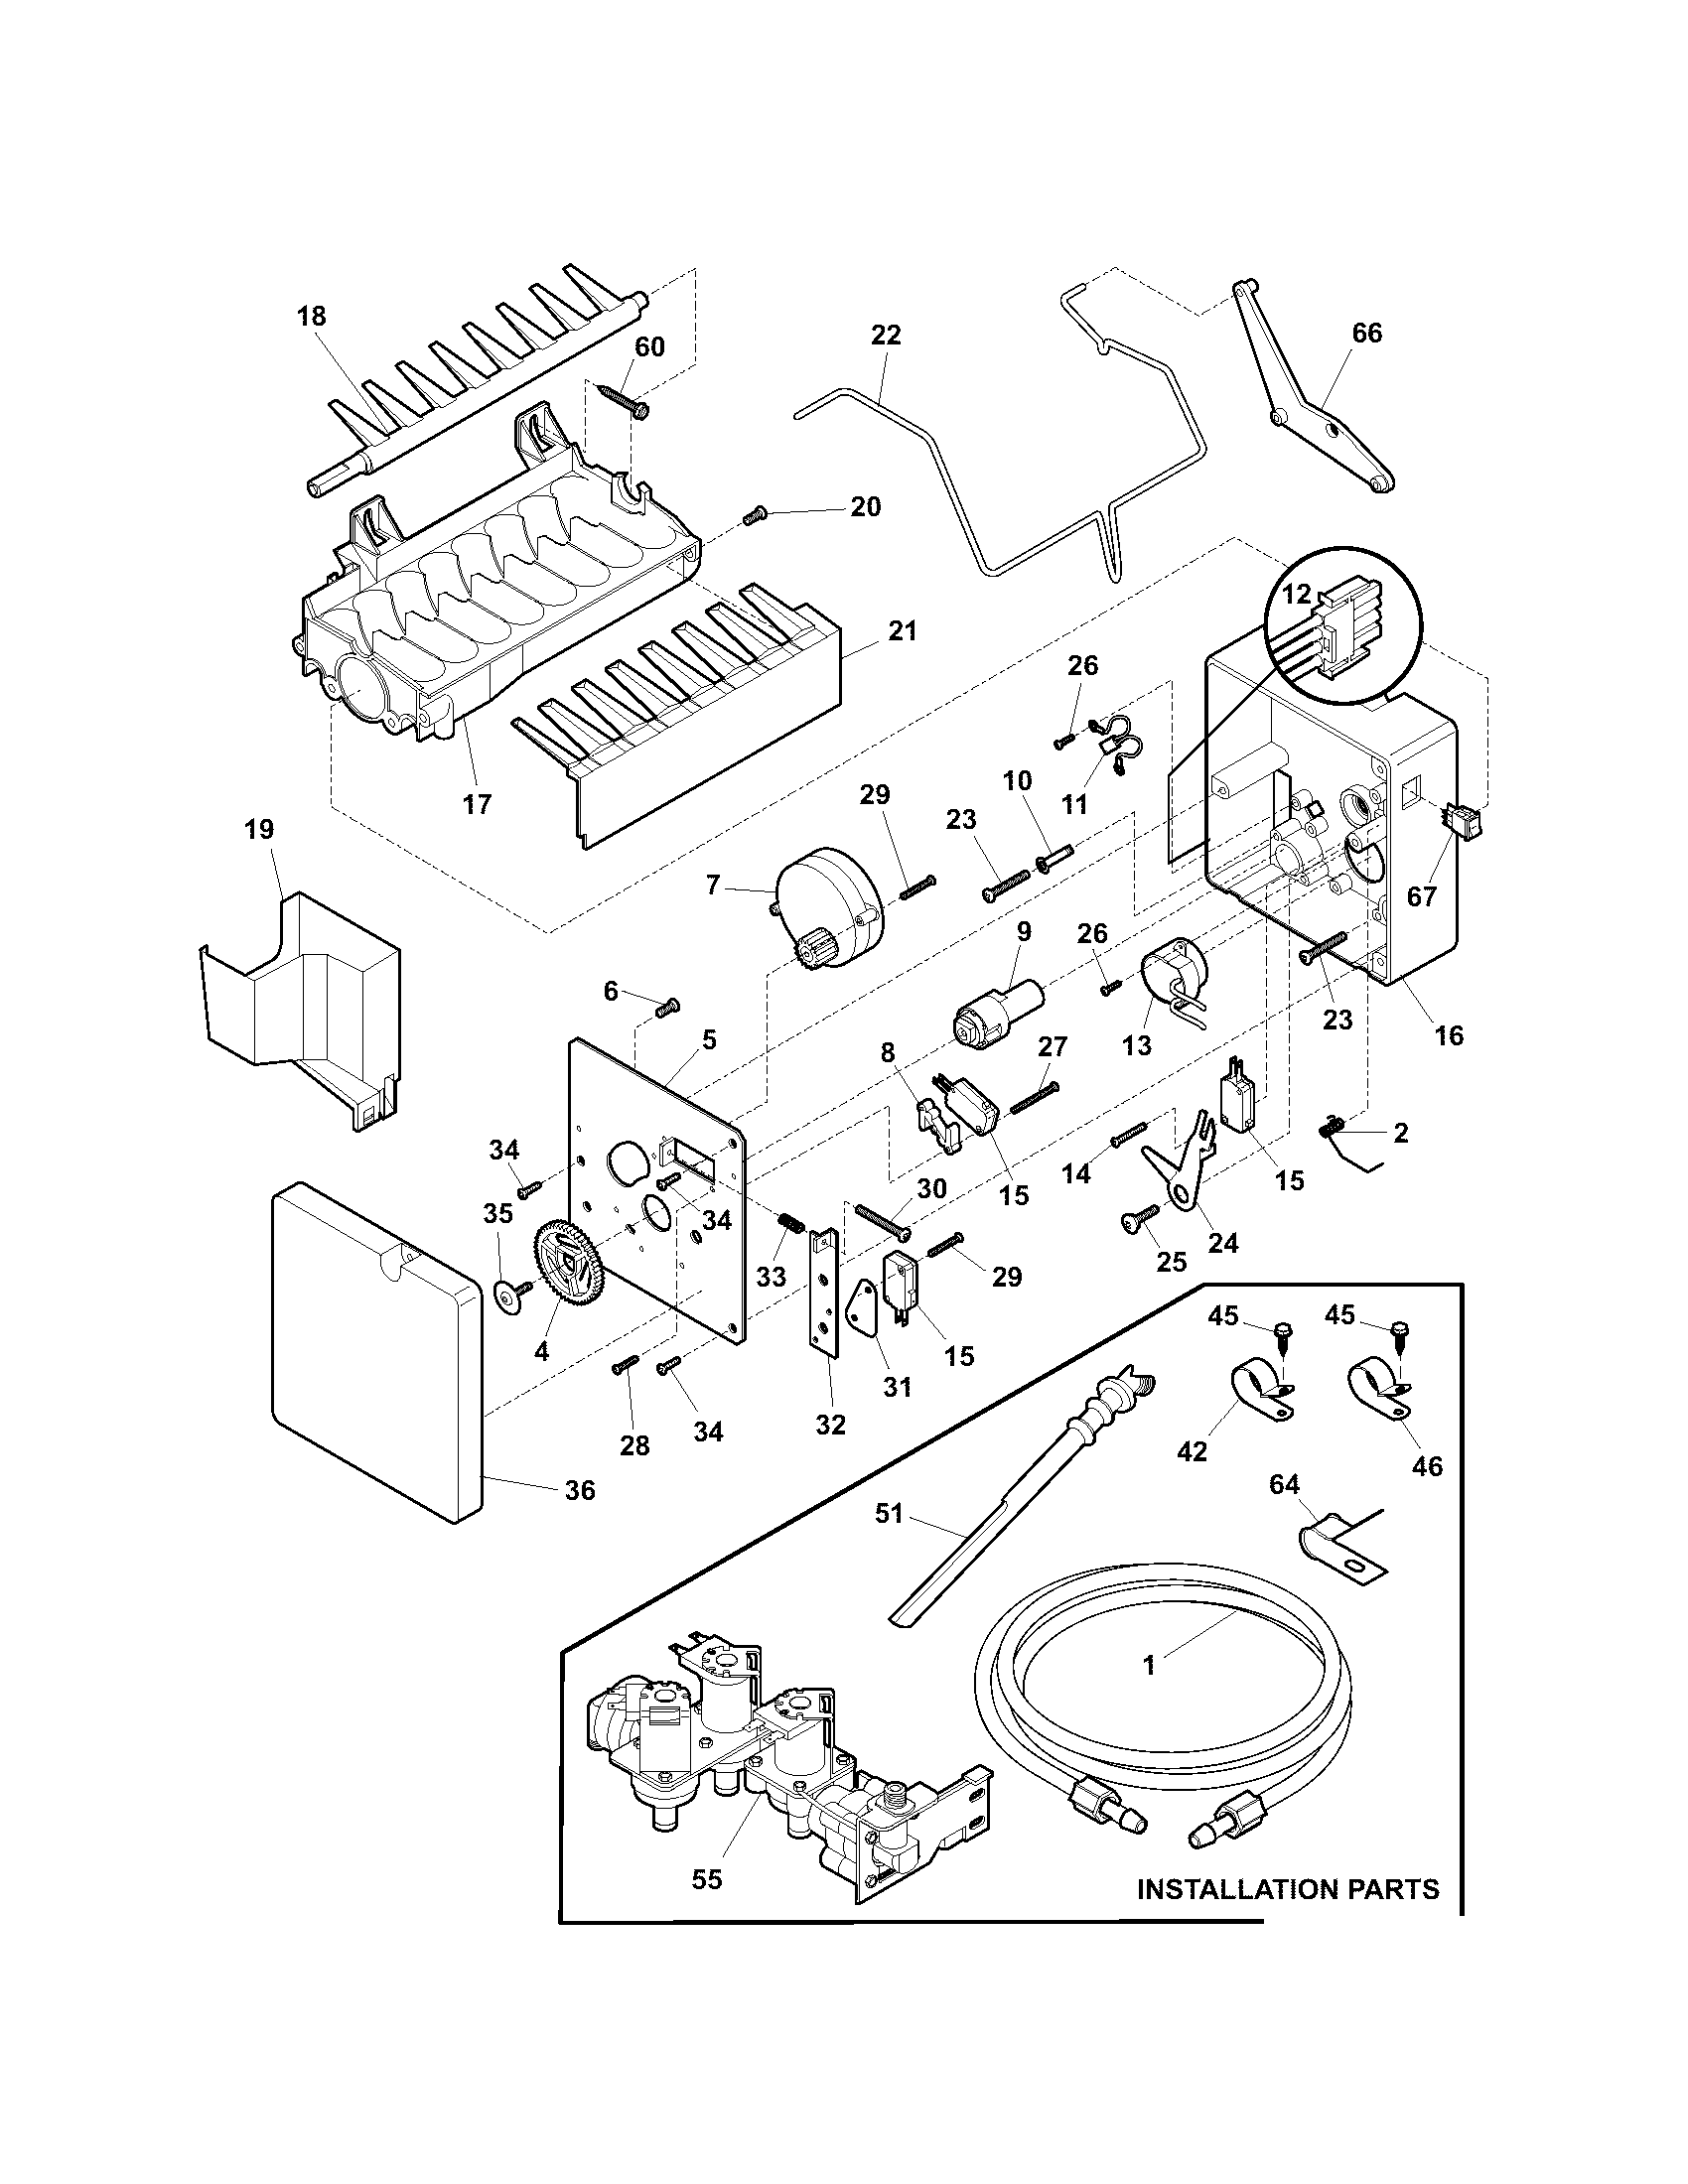 ICE MAKER Diagram & Parts List for Model 25355694403